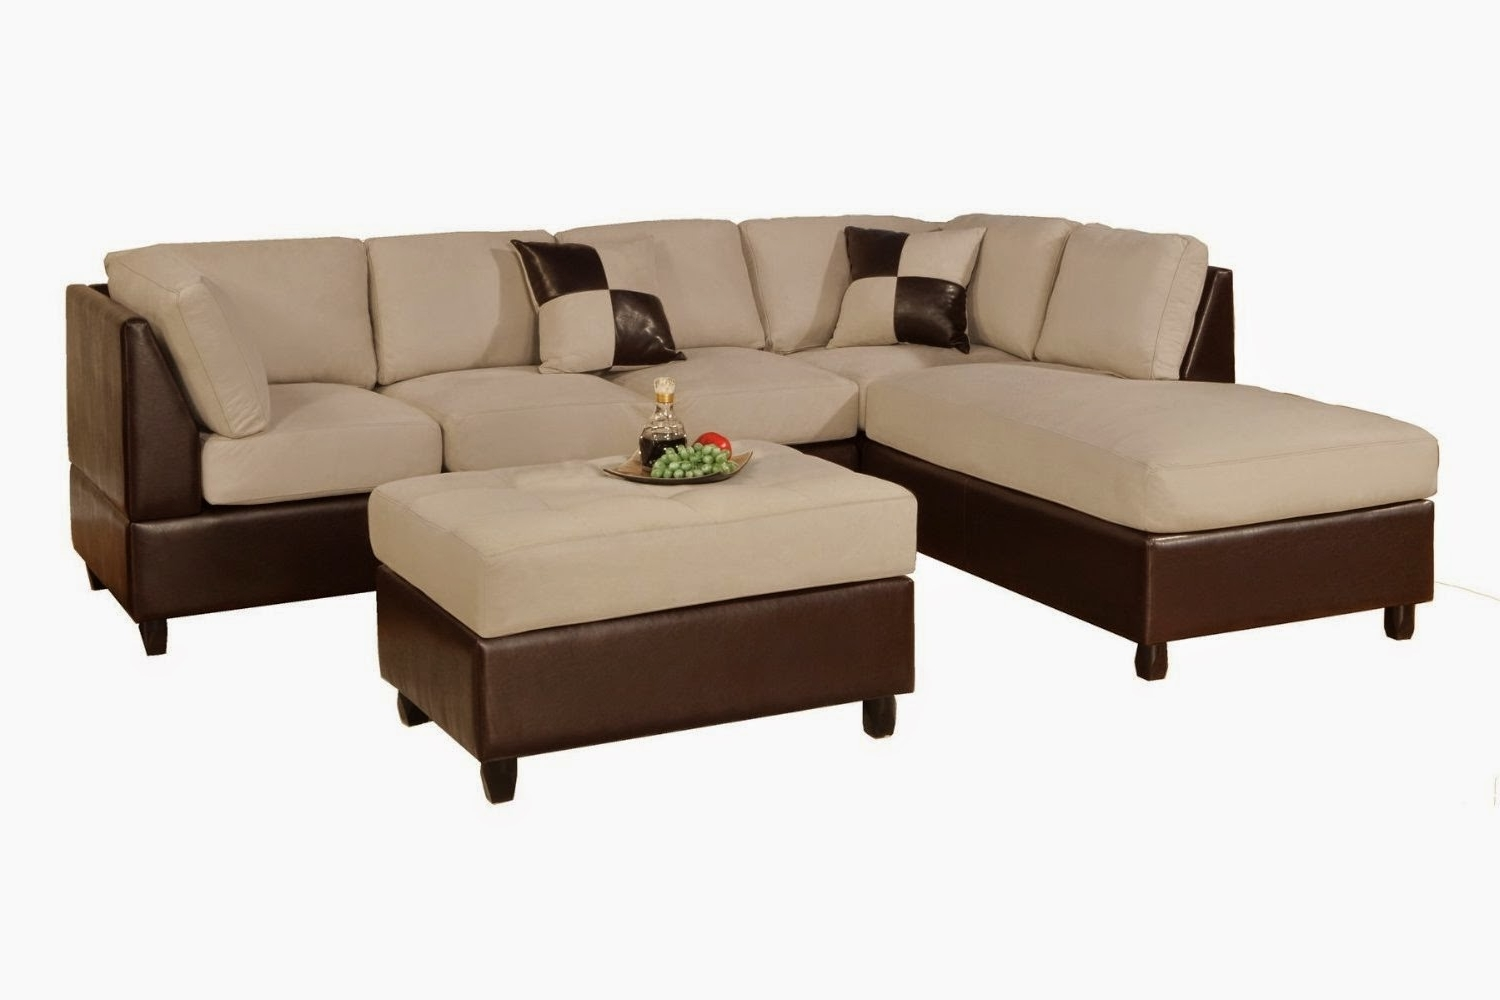 Sectional Sofas In Philippines For Preferred Peterborough Swansea Philippines Nice Philippine Rightmove (View 14 of 20)